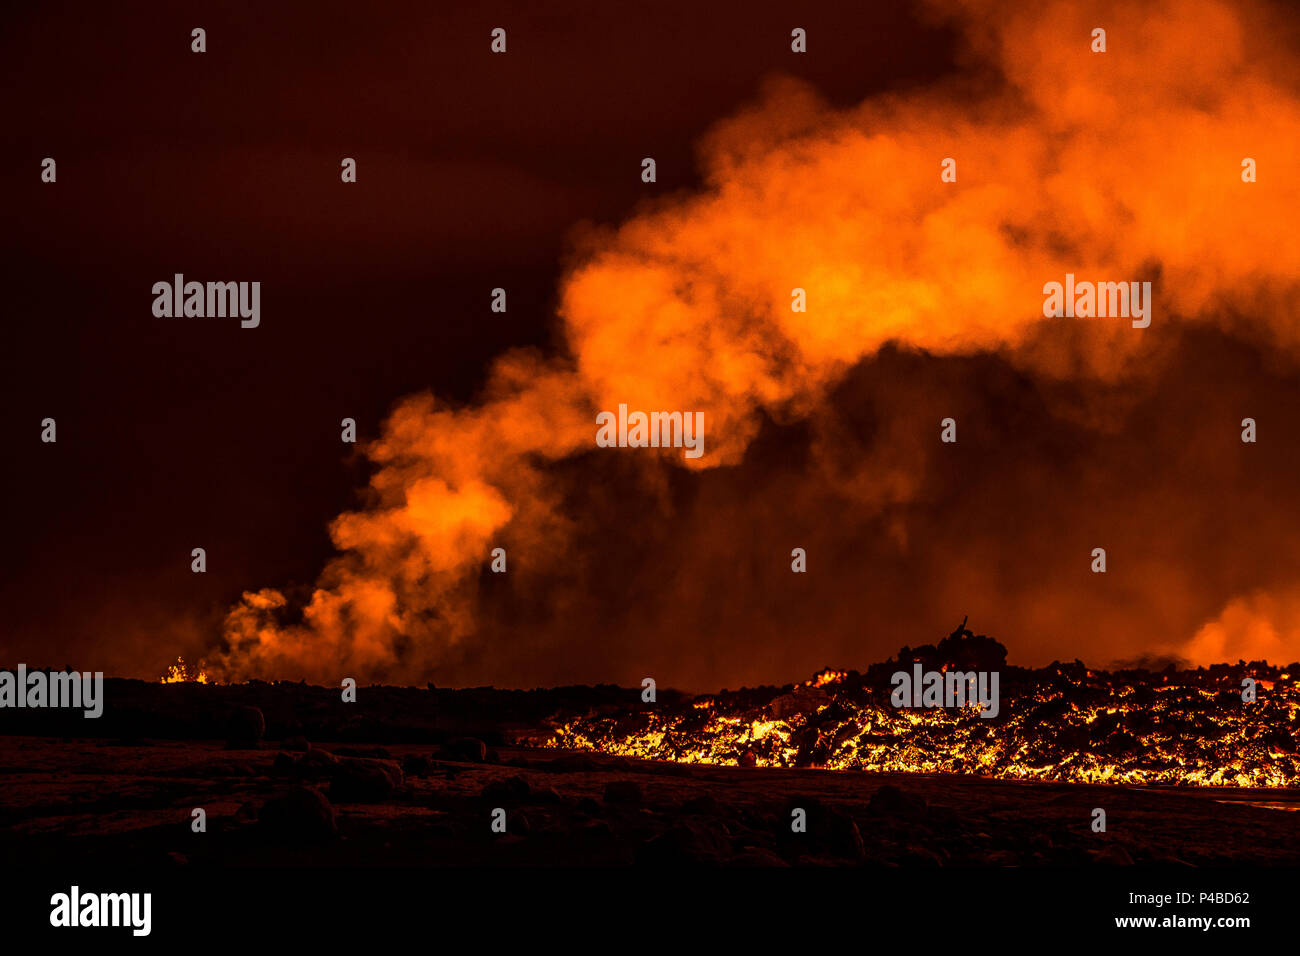 Lava fountains at night, eruption at the Holuhraun Fissure, near the Bardarbunga Volcano, Iceland. August 29, 2014 a fissure eruption started in Holuhraun at the northern end of a magma intrusion, which had moved progressively north, from the Bardarbunga volcano. Bardarbunga is a stratovolcano located under Vatnajokull, Iceland's most extensive glacier. Picture Date-Sept. 2, 2014 - Stock Image